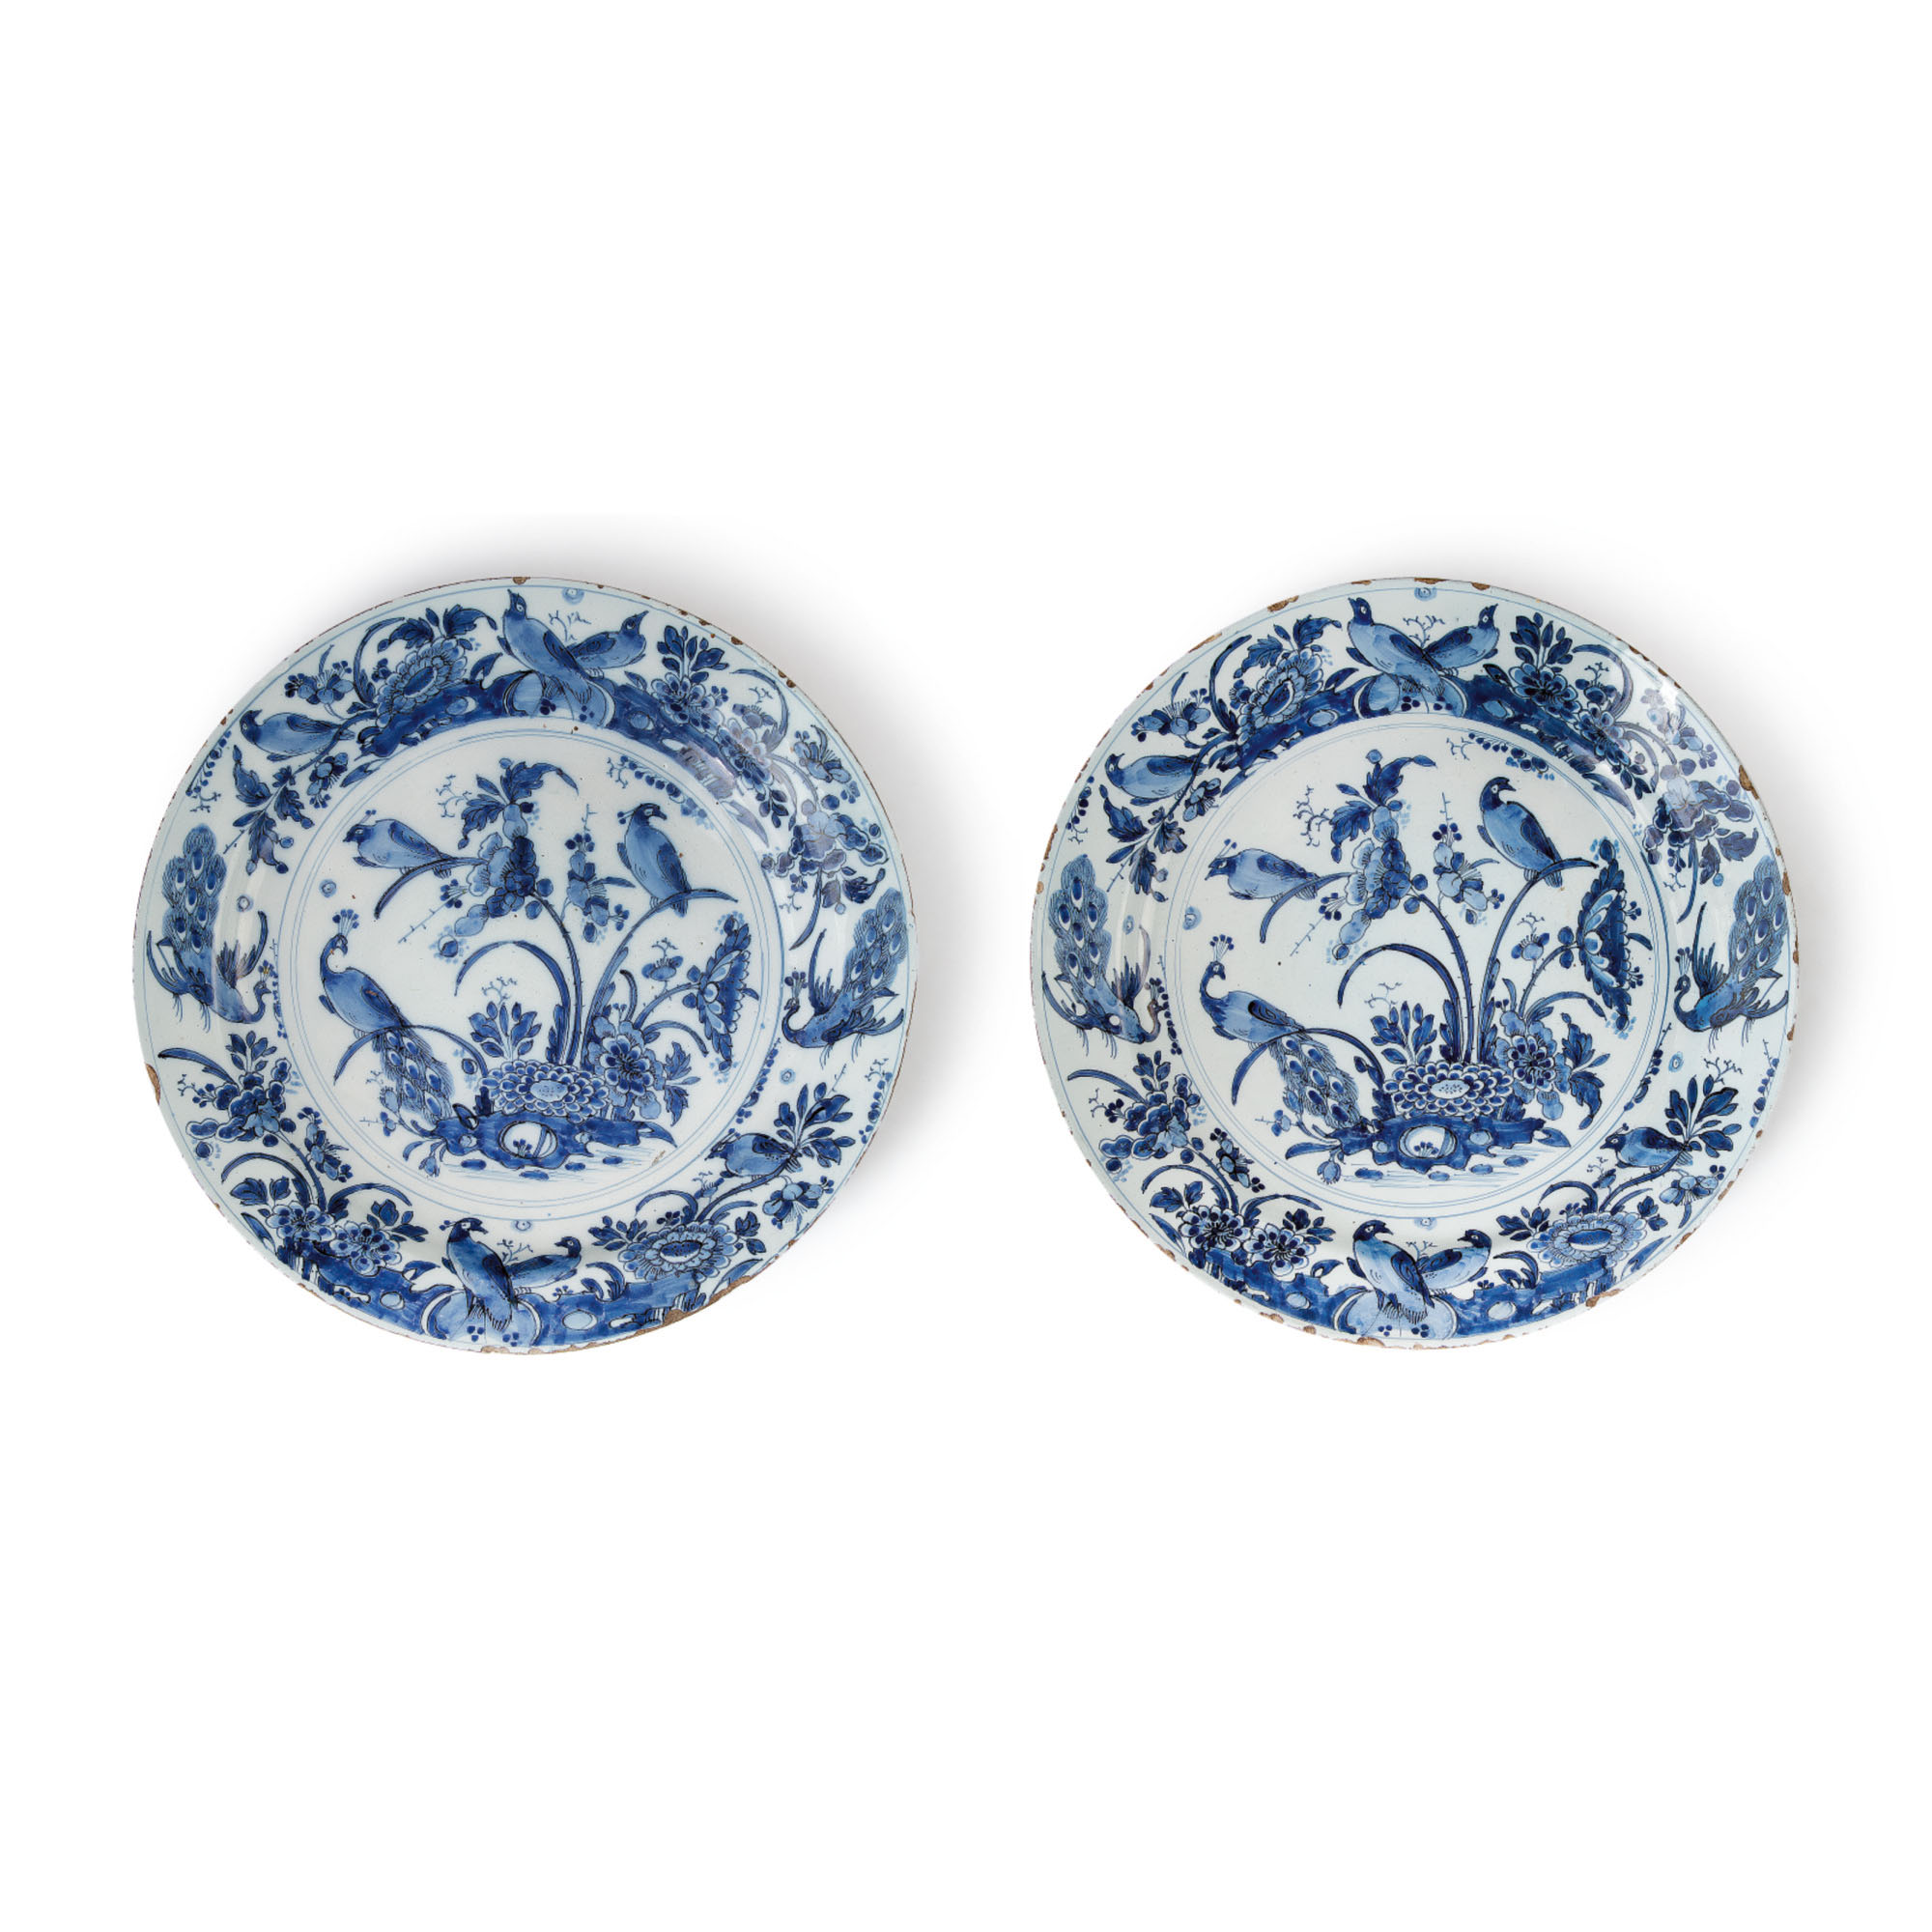 A PAIR OF DUTCH DELFT BLUE AND WHITE LARGE CHARGERS, CIRCA 1700